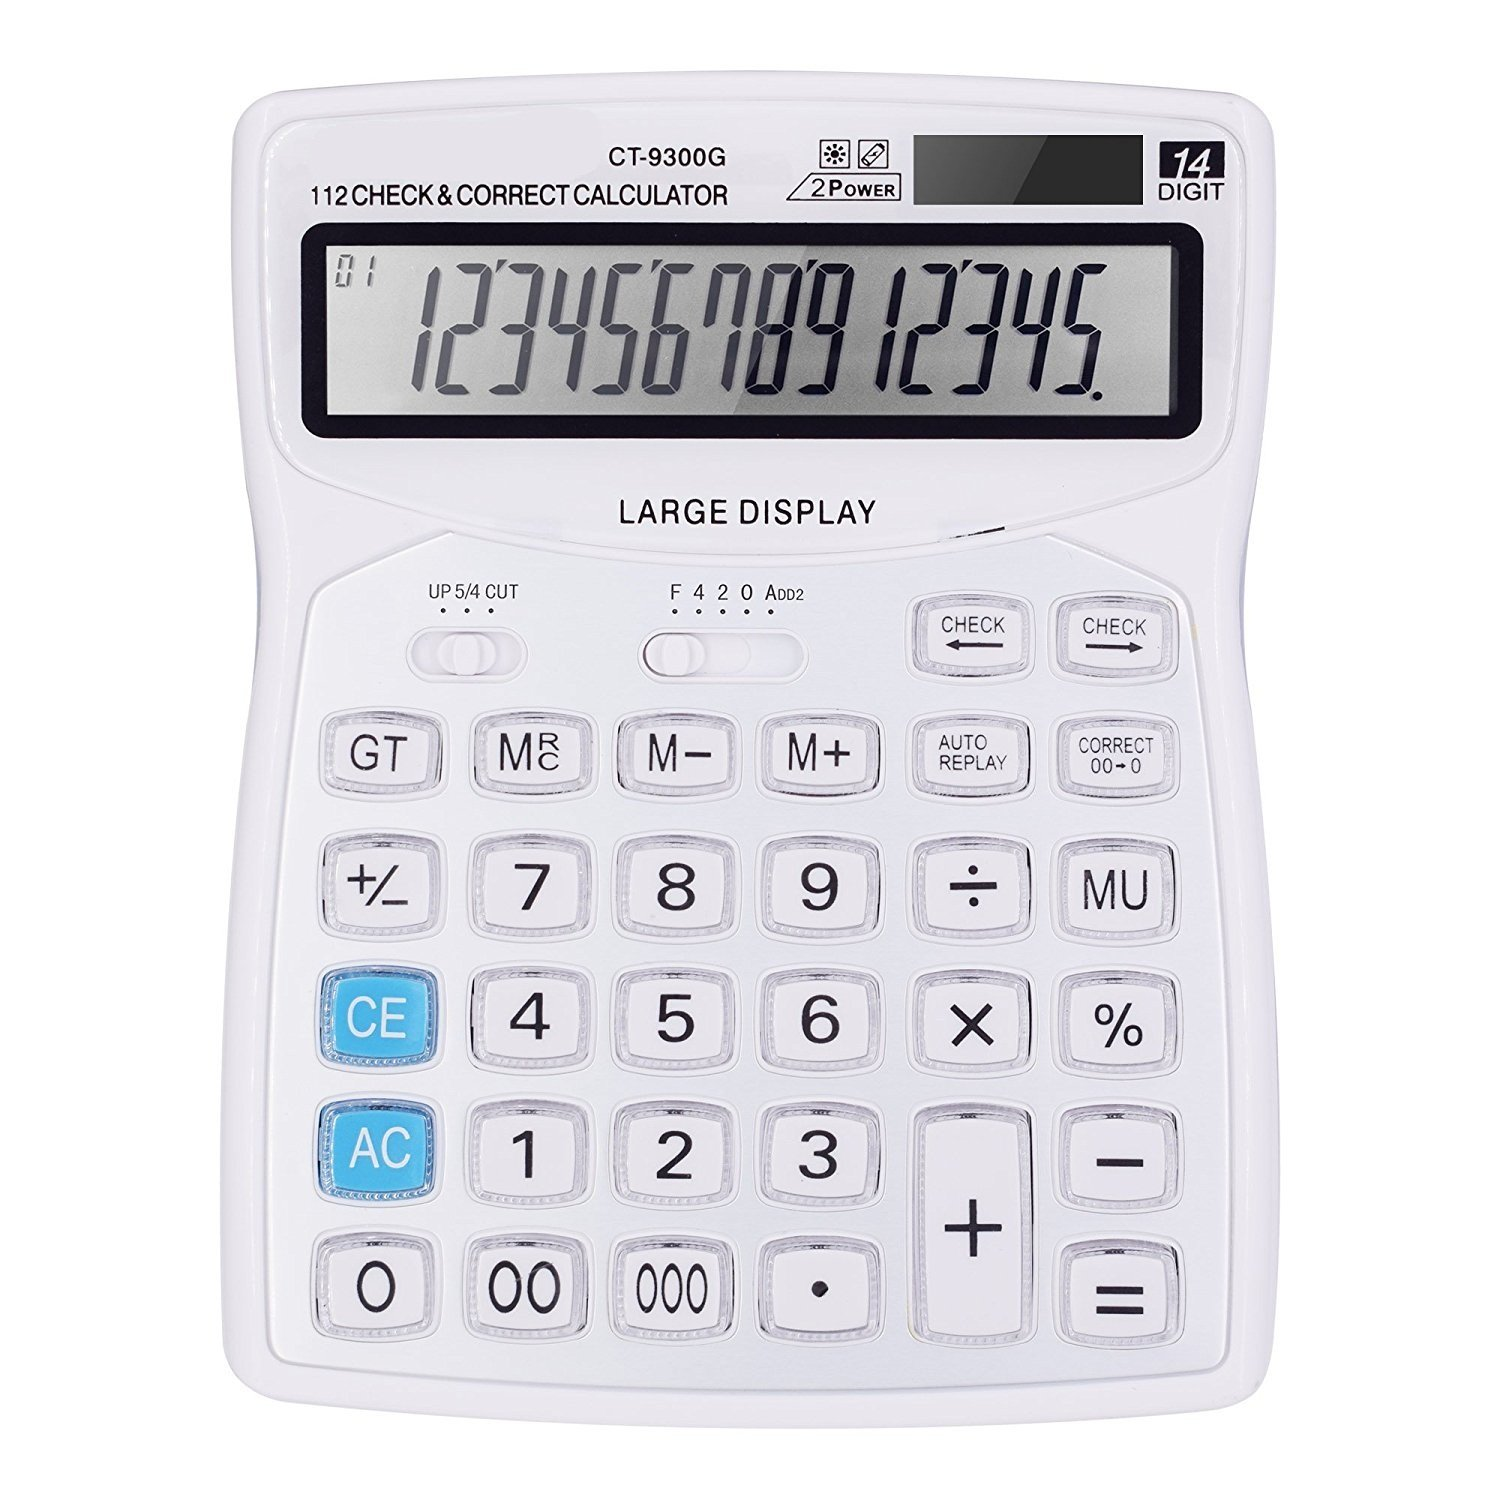 Professional Standard Large Desktop Calculator,Office/Business/Electronic calculators with 14-Digit Large Display, Solar and AA Battery Dual Power(White) by Sweet decoration